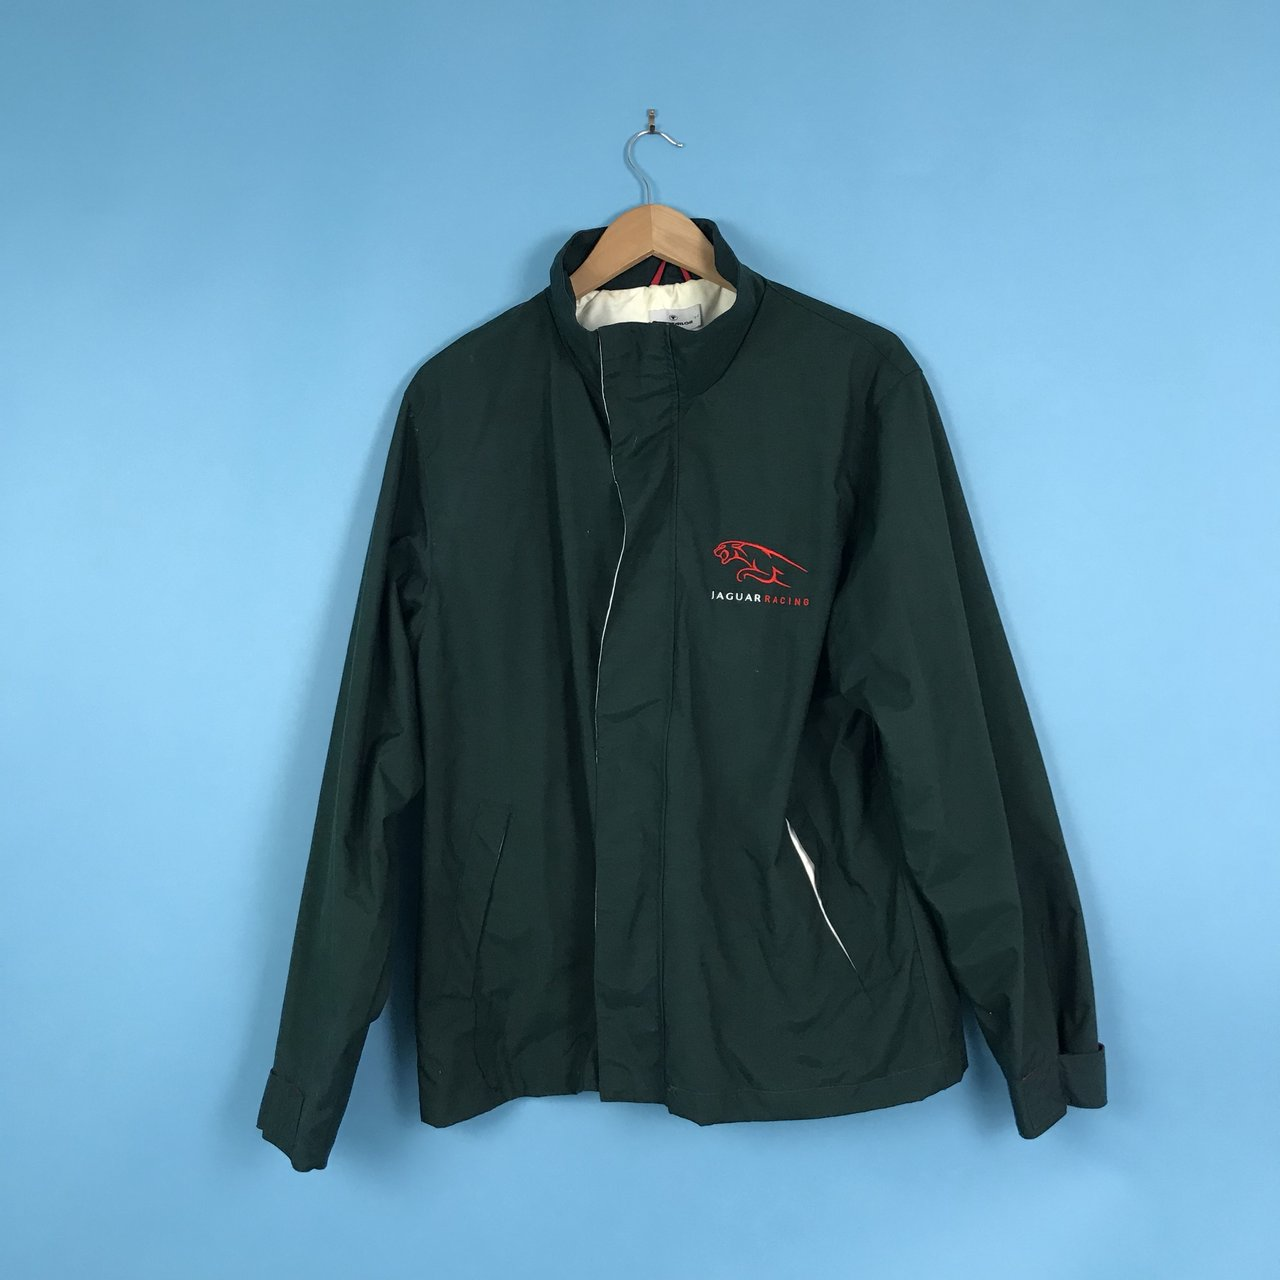 fe29aa834e44be Jaguar racing jacket. Classic jag dark green with red logo a - Depop